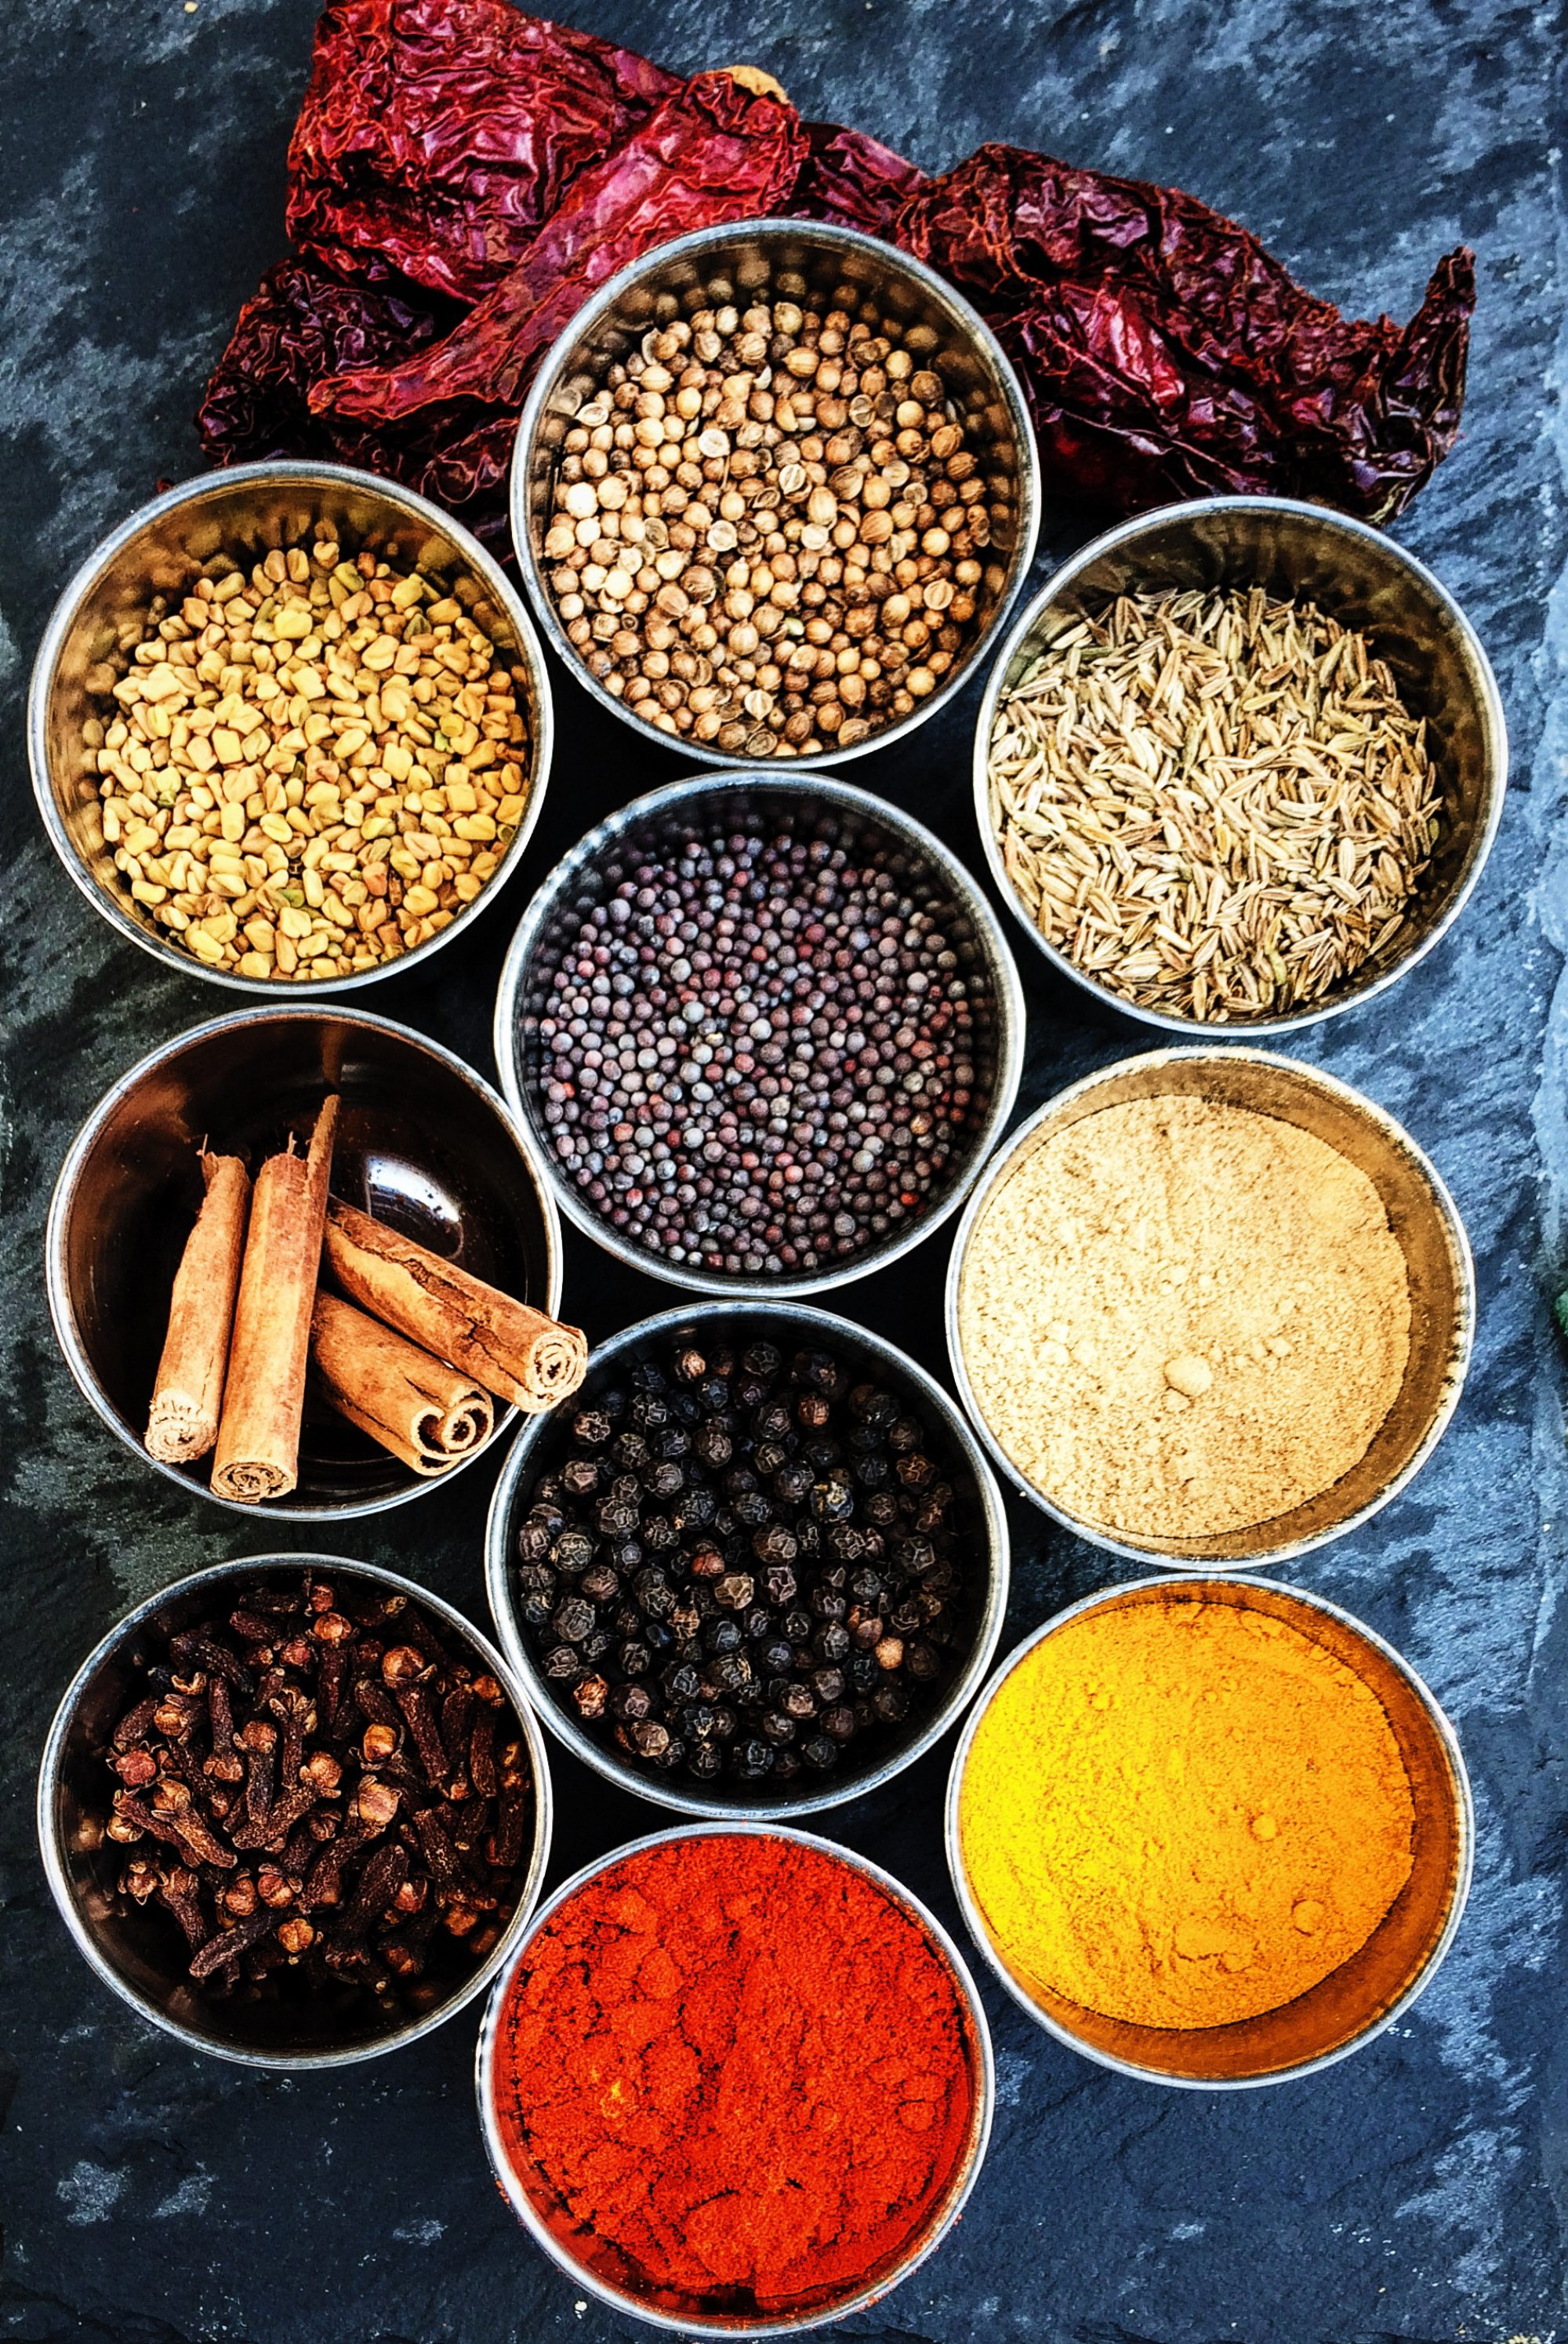 Seven Sisters' Spices